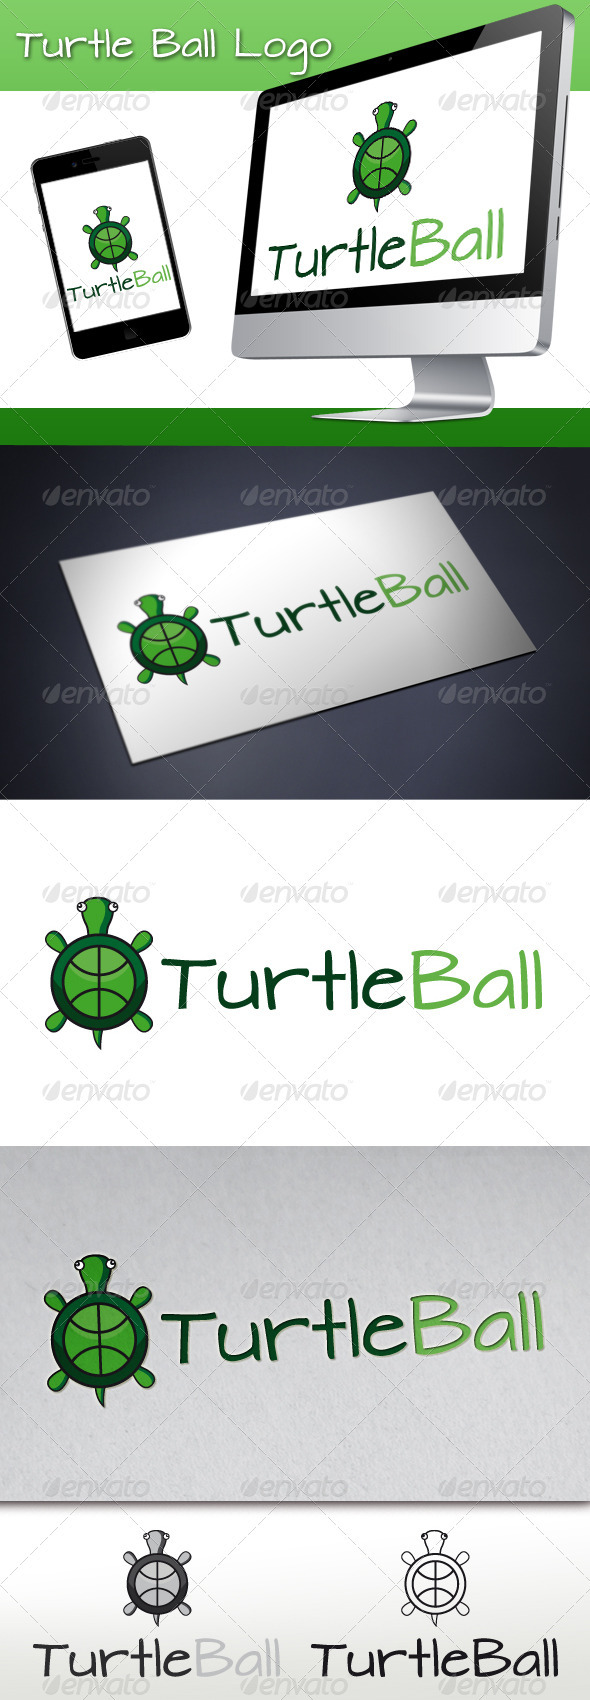 GraphicRiver Turtle Ball Logo 3363074